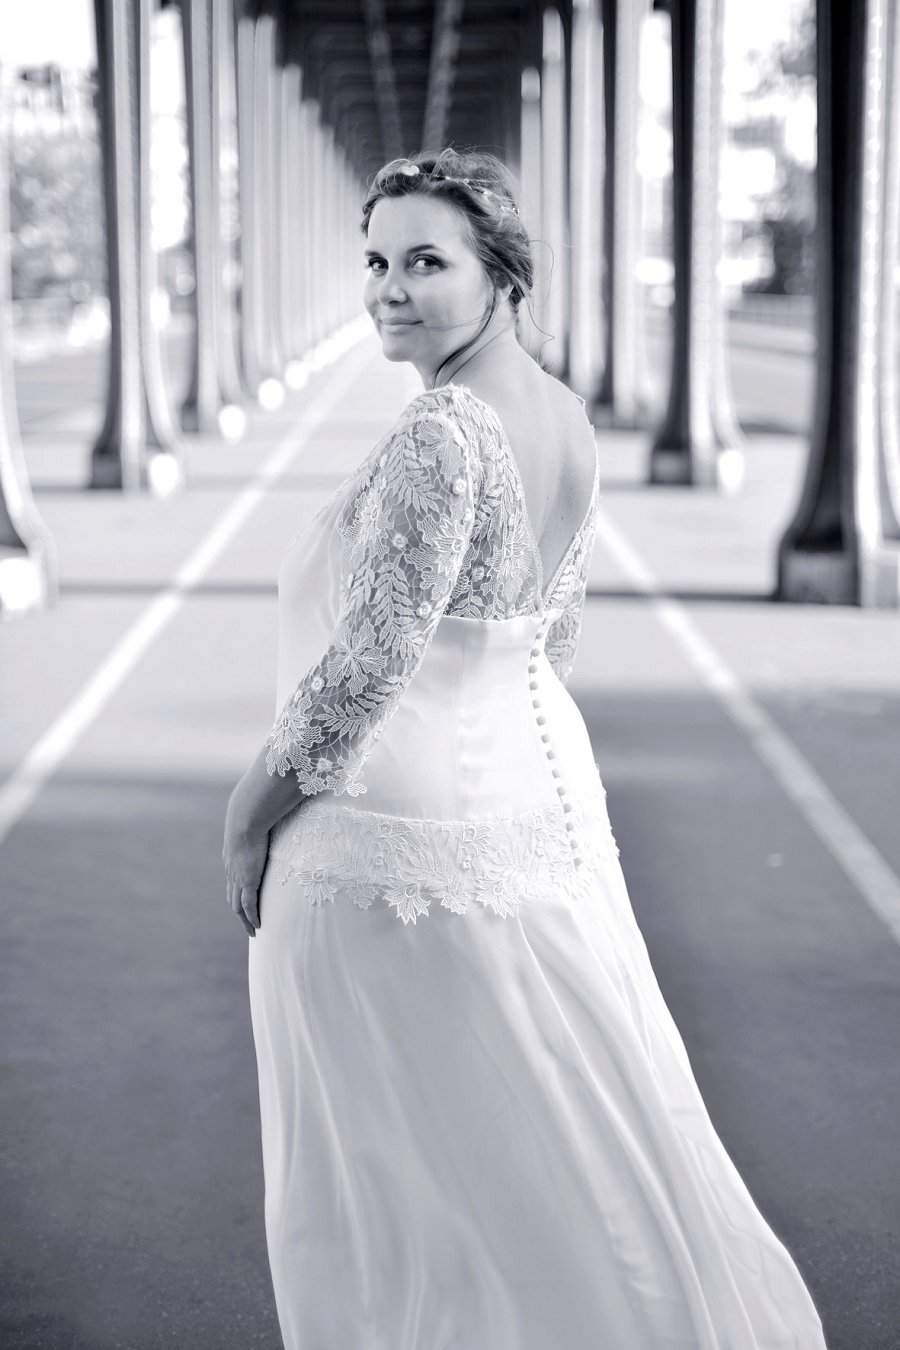 Plus Size Pretty Curvy Collection Chic Wedding Dresses By Stephanie Wolff